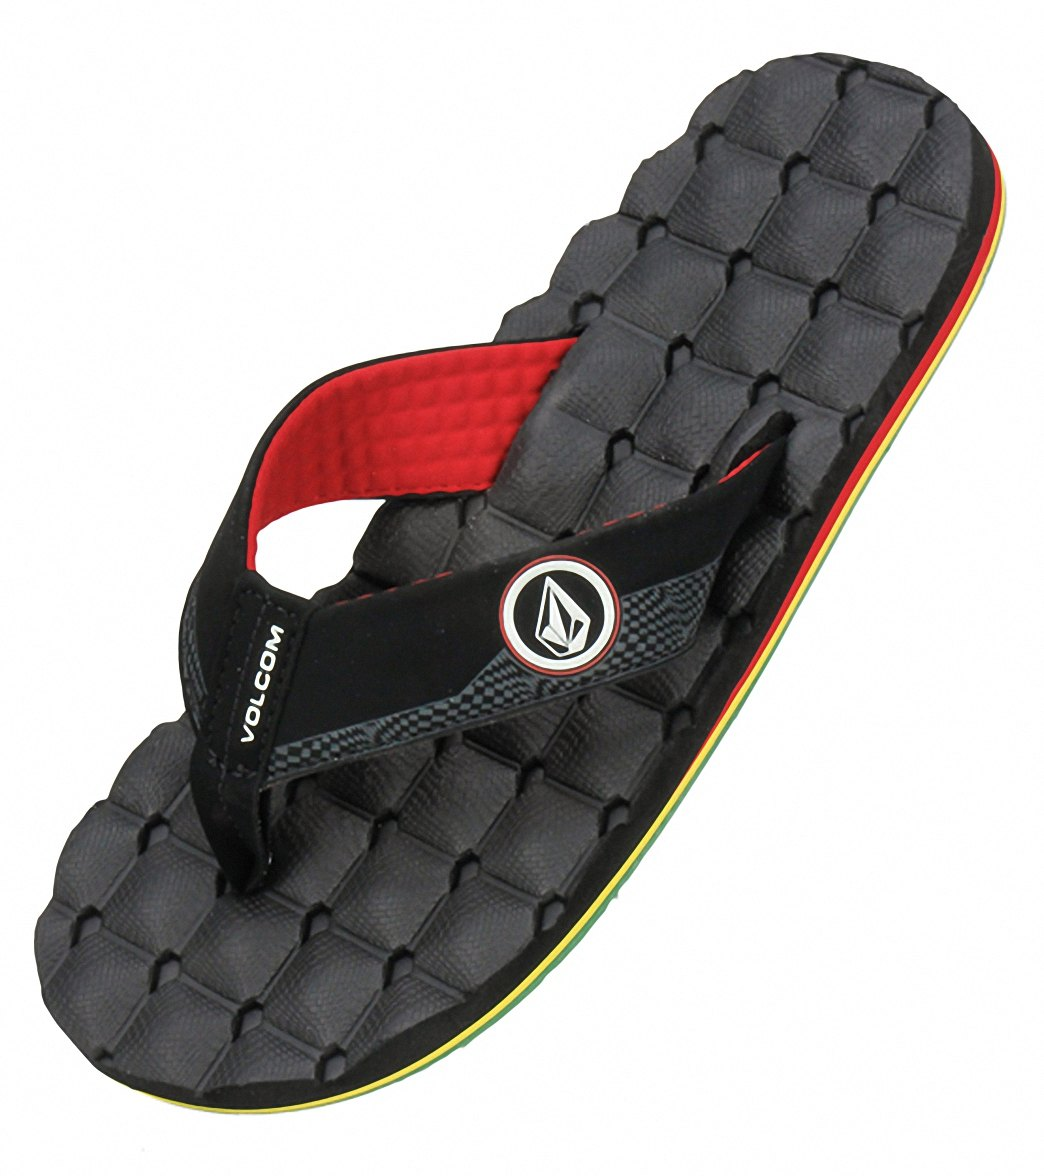 f0630f014 Volcom Men s Recliner Flip Flop at SwimOutlet.com